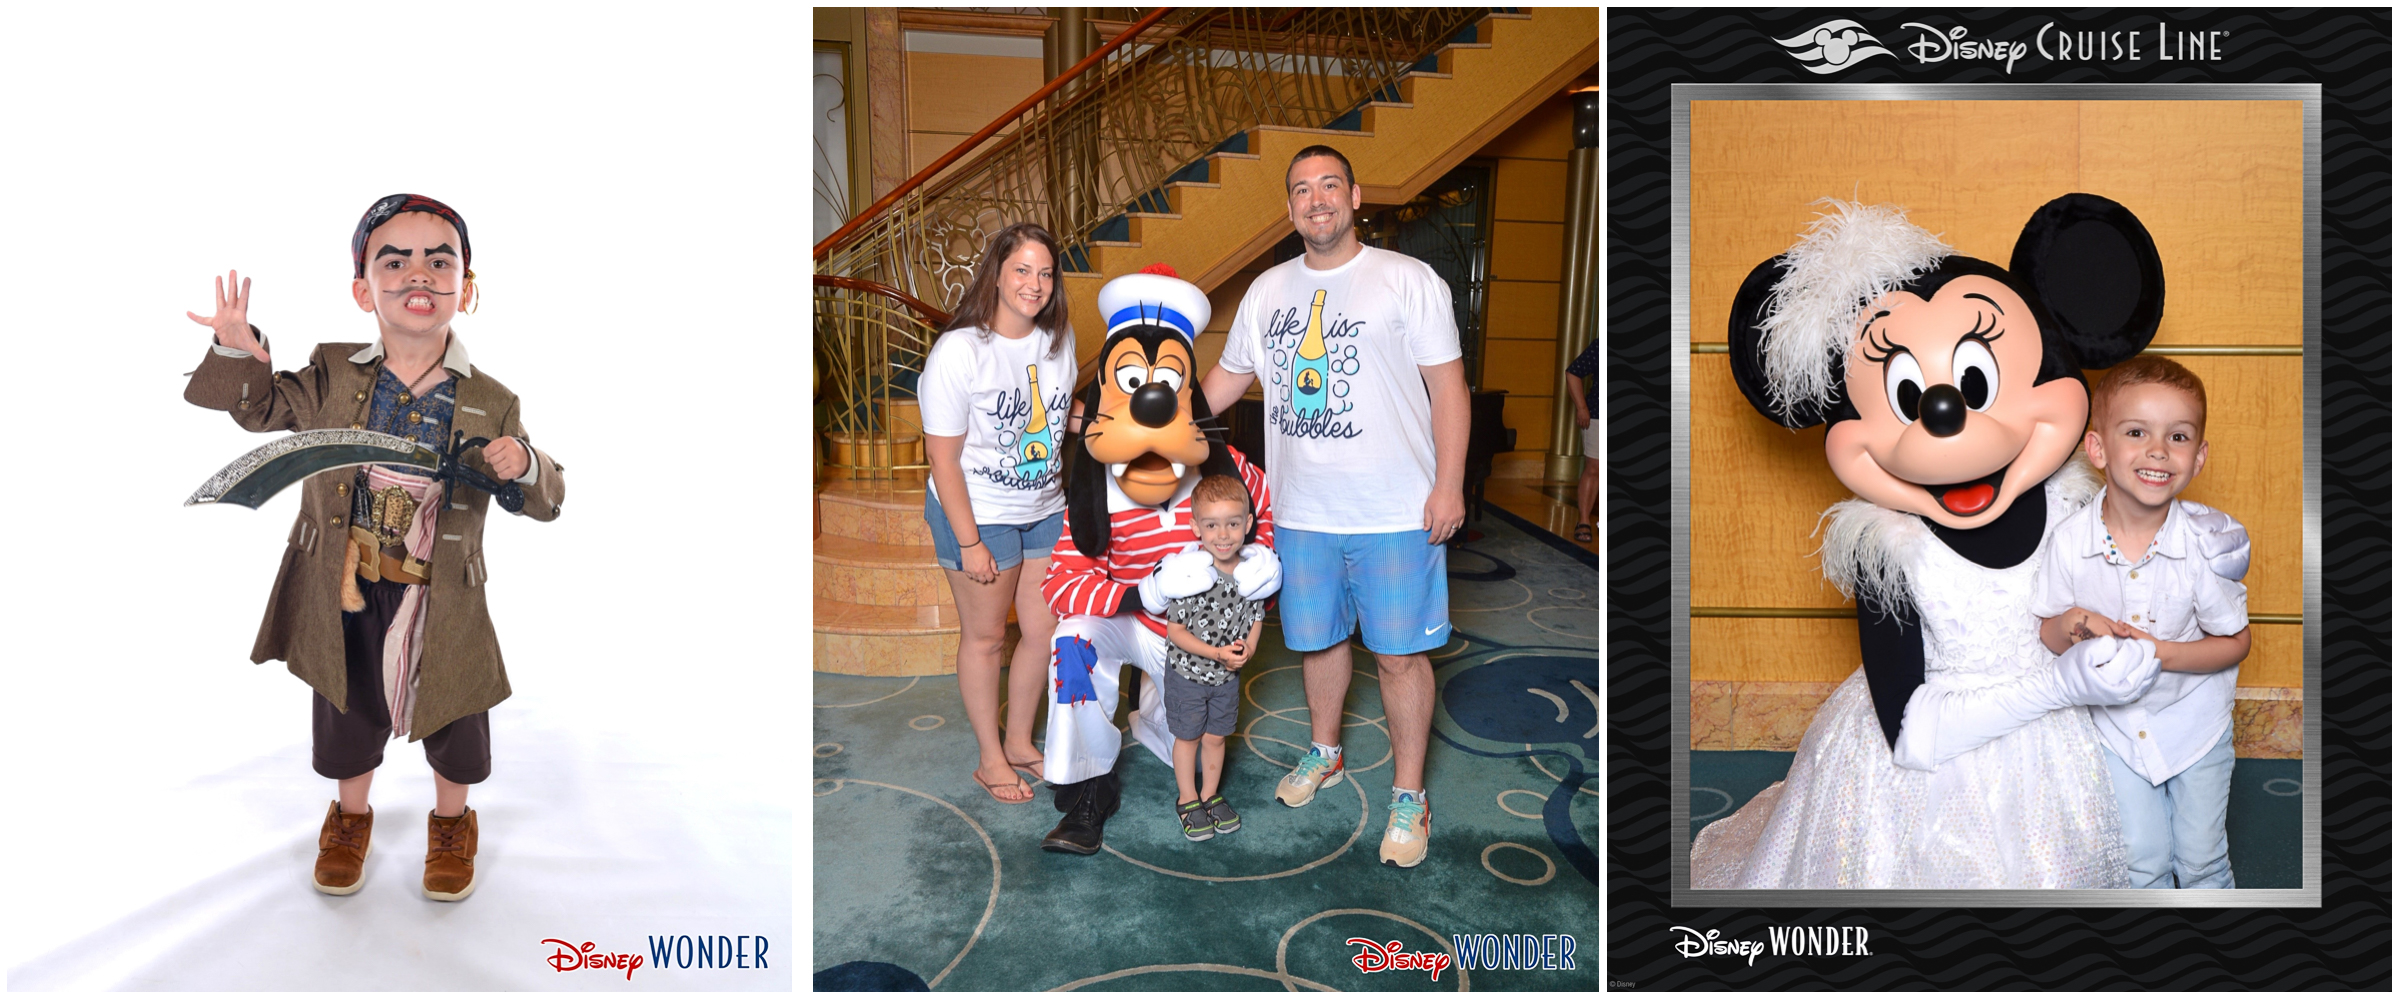 Left: Sporting his Captain Jack Sparrow makeover at the Bibbidi Bobbidi Boutique with his fiercest pirate look; Center: Posing with Goofy (fave of the trip), wearing matching Lost Bros t-shirts; Right: Cheesin' with fancy Minnie on semi-formal night.